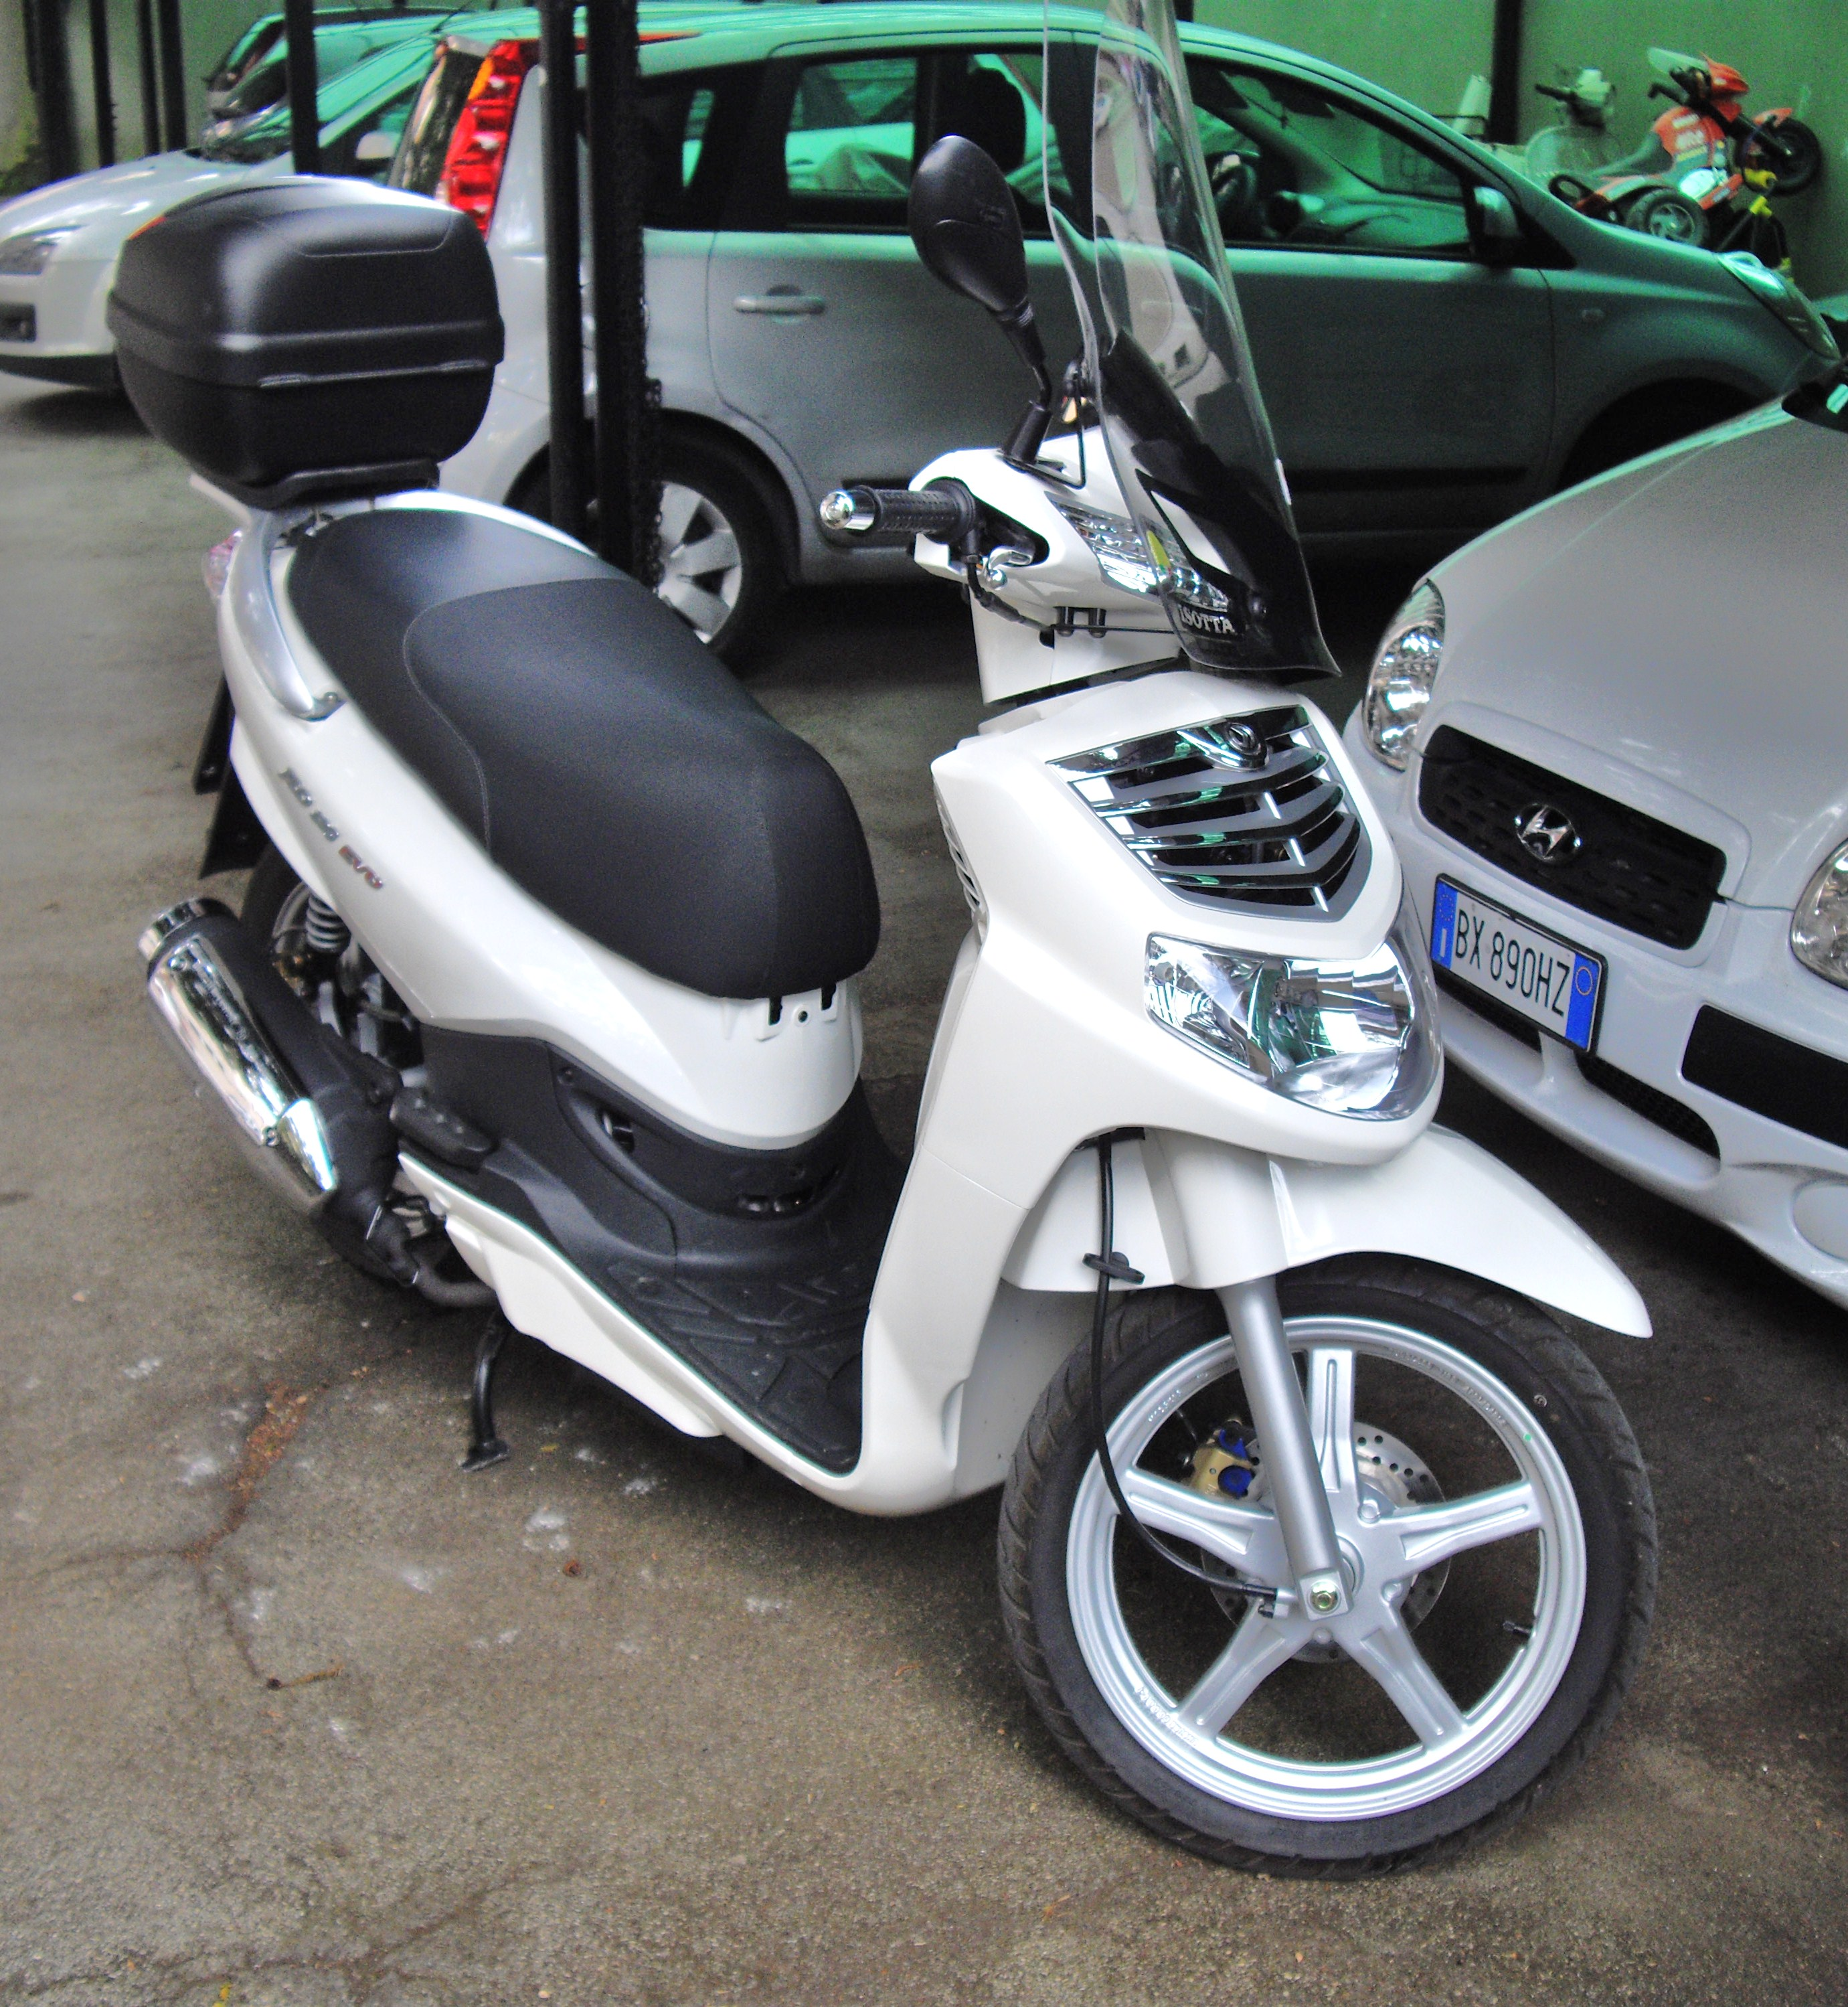 Official Sym Hd 200 Evo Scooter Video Distributed By 2016 Car  #3C6F4C